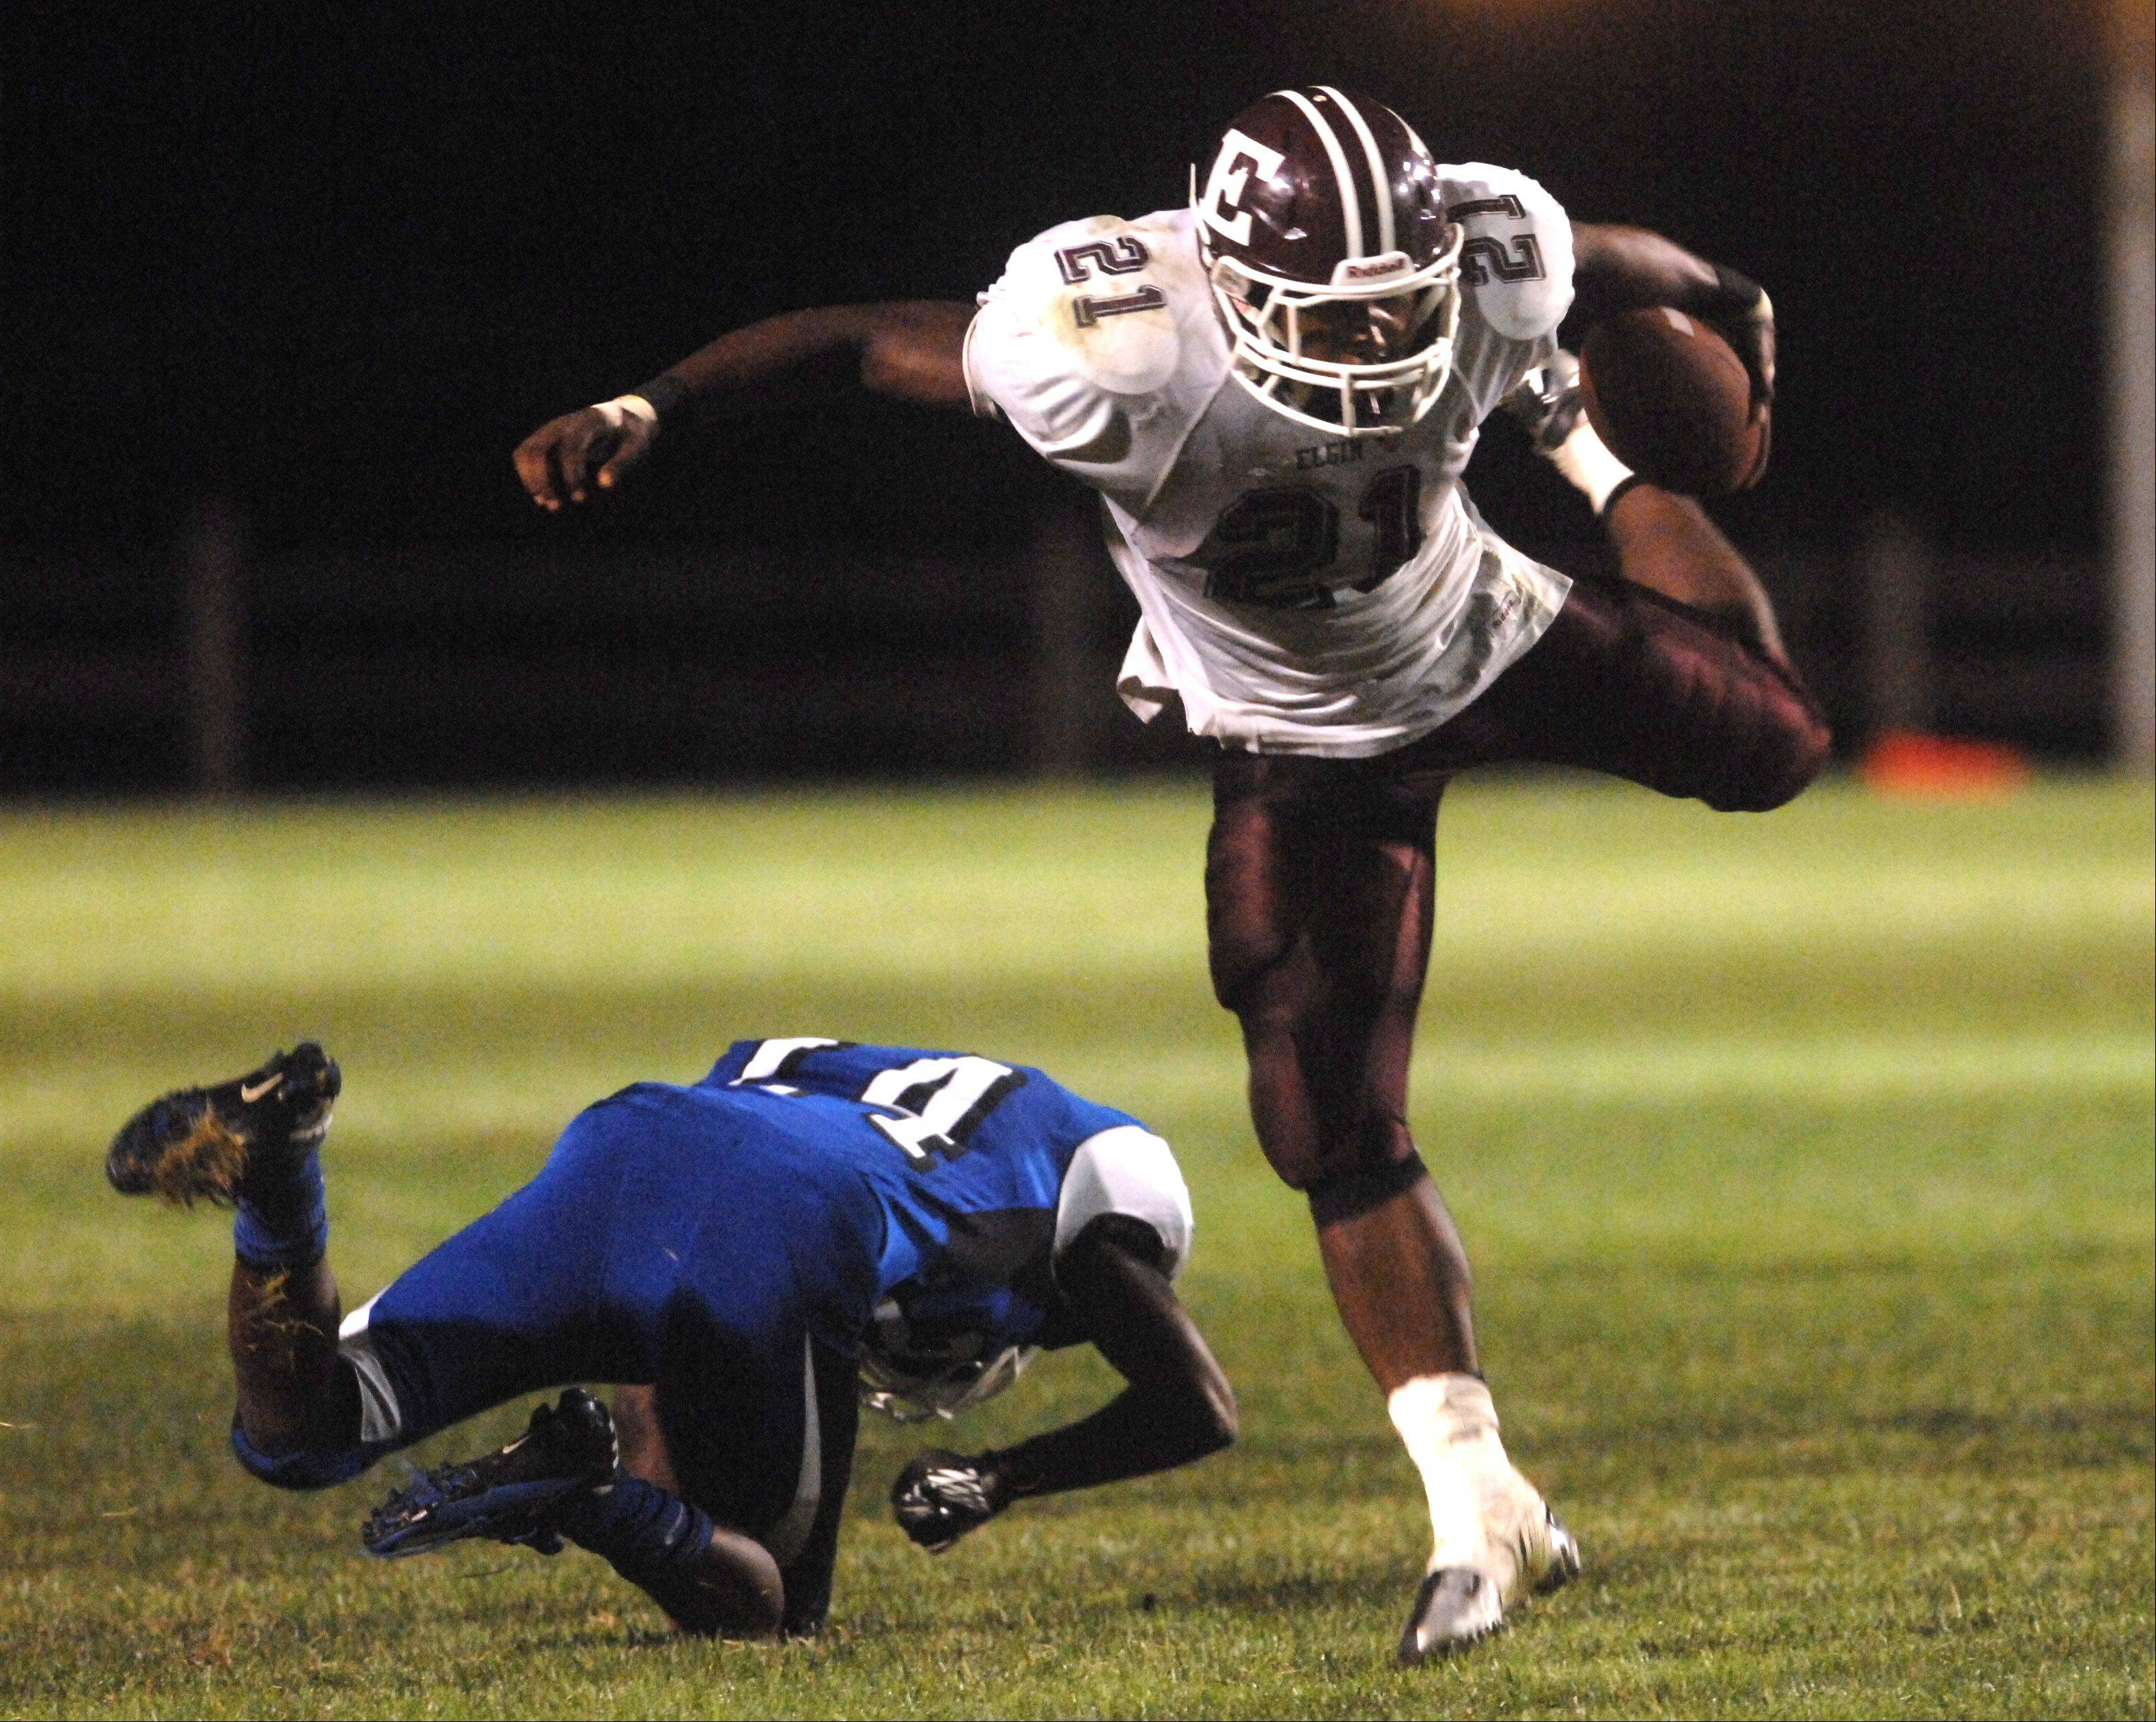 Elgin's Jaylen Clemons breaks free for a big run.